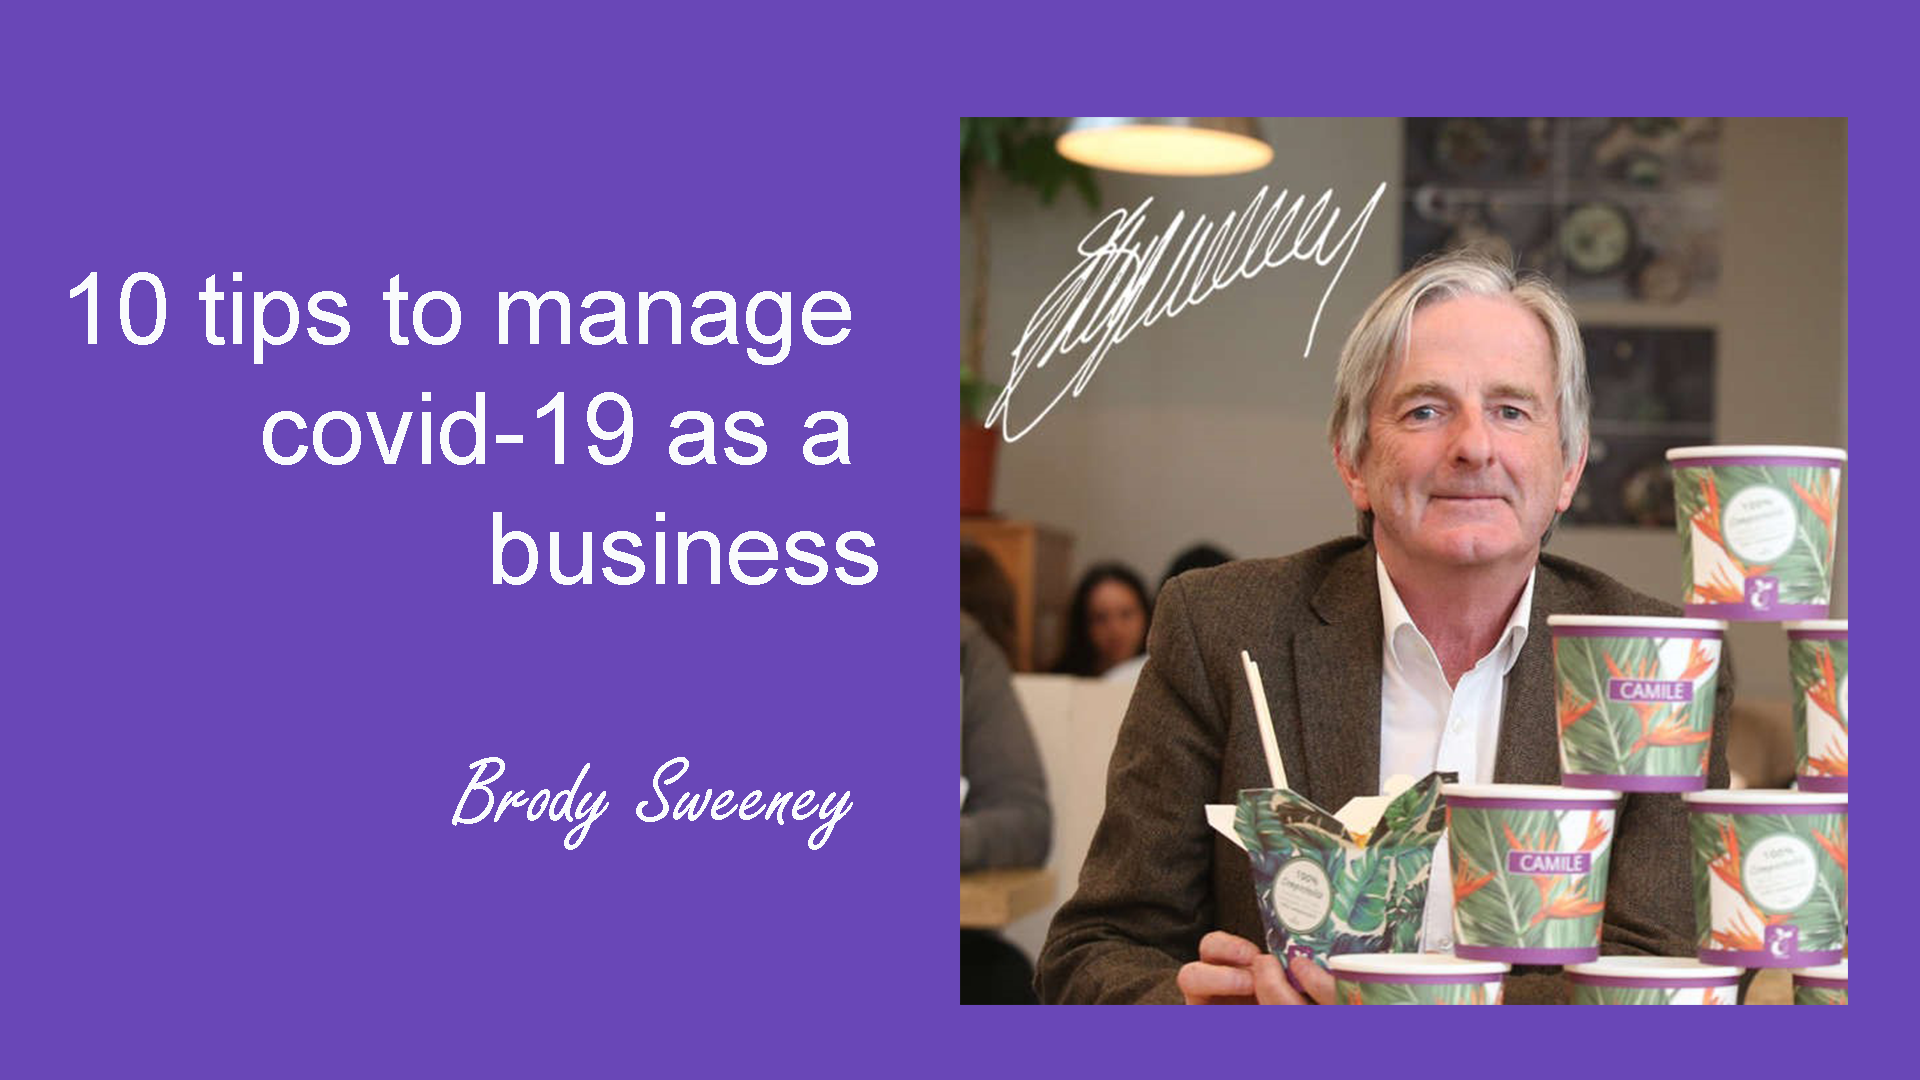 10 tips to manage covid-19 as a business by Brody Sweeney